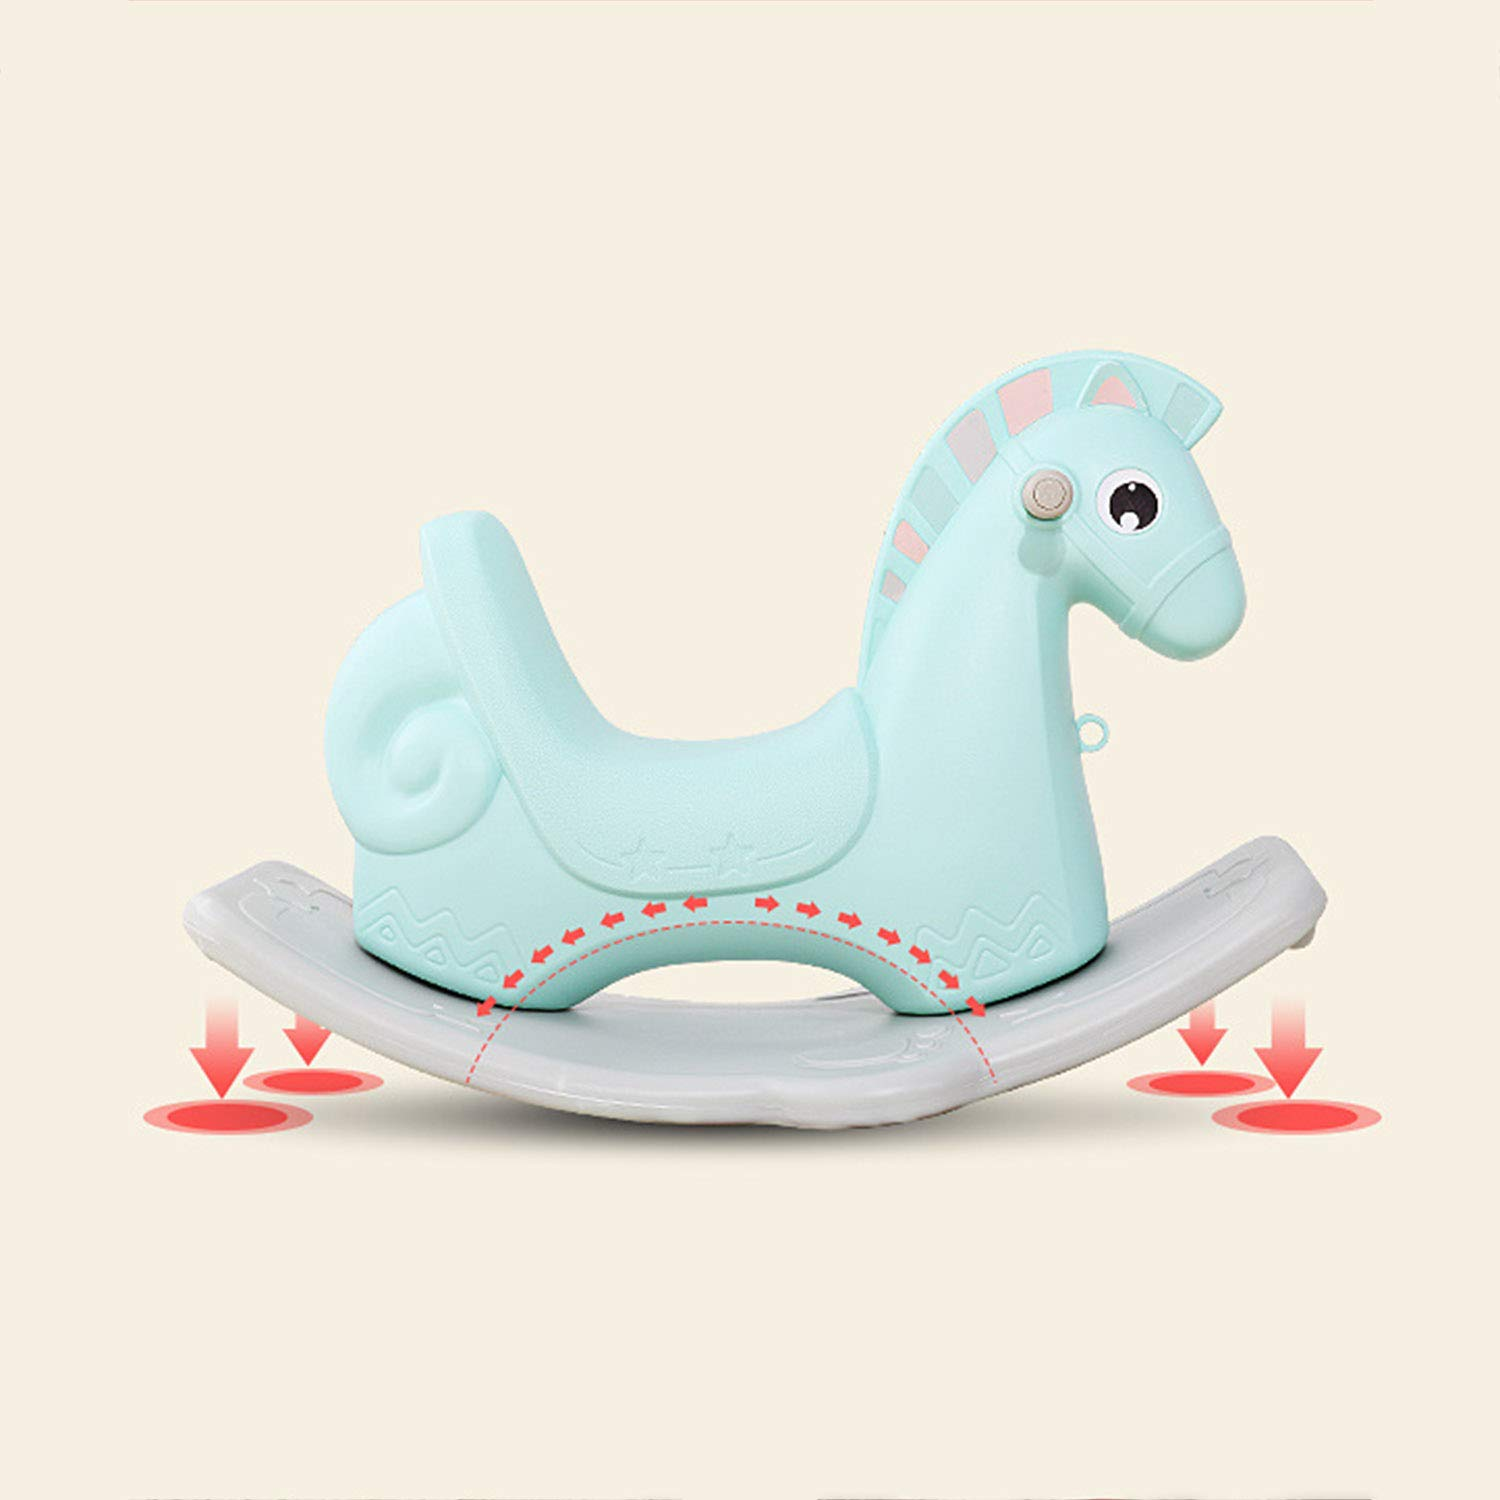 AIBAB Baby Rocking Horse Tumbler Baby Comfort Chair Thick Plastic Multifunction Nursery Boy Girl Toy Gift by AIBAB (Image #3)